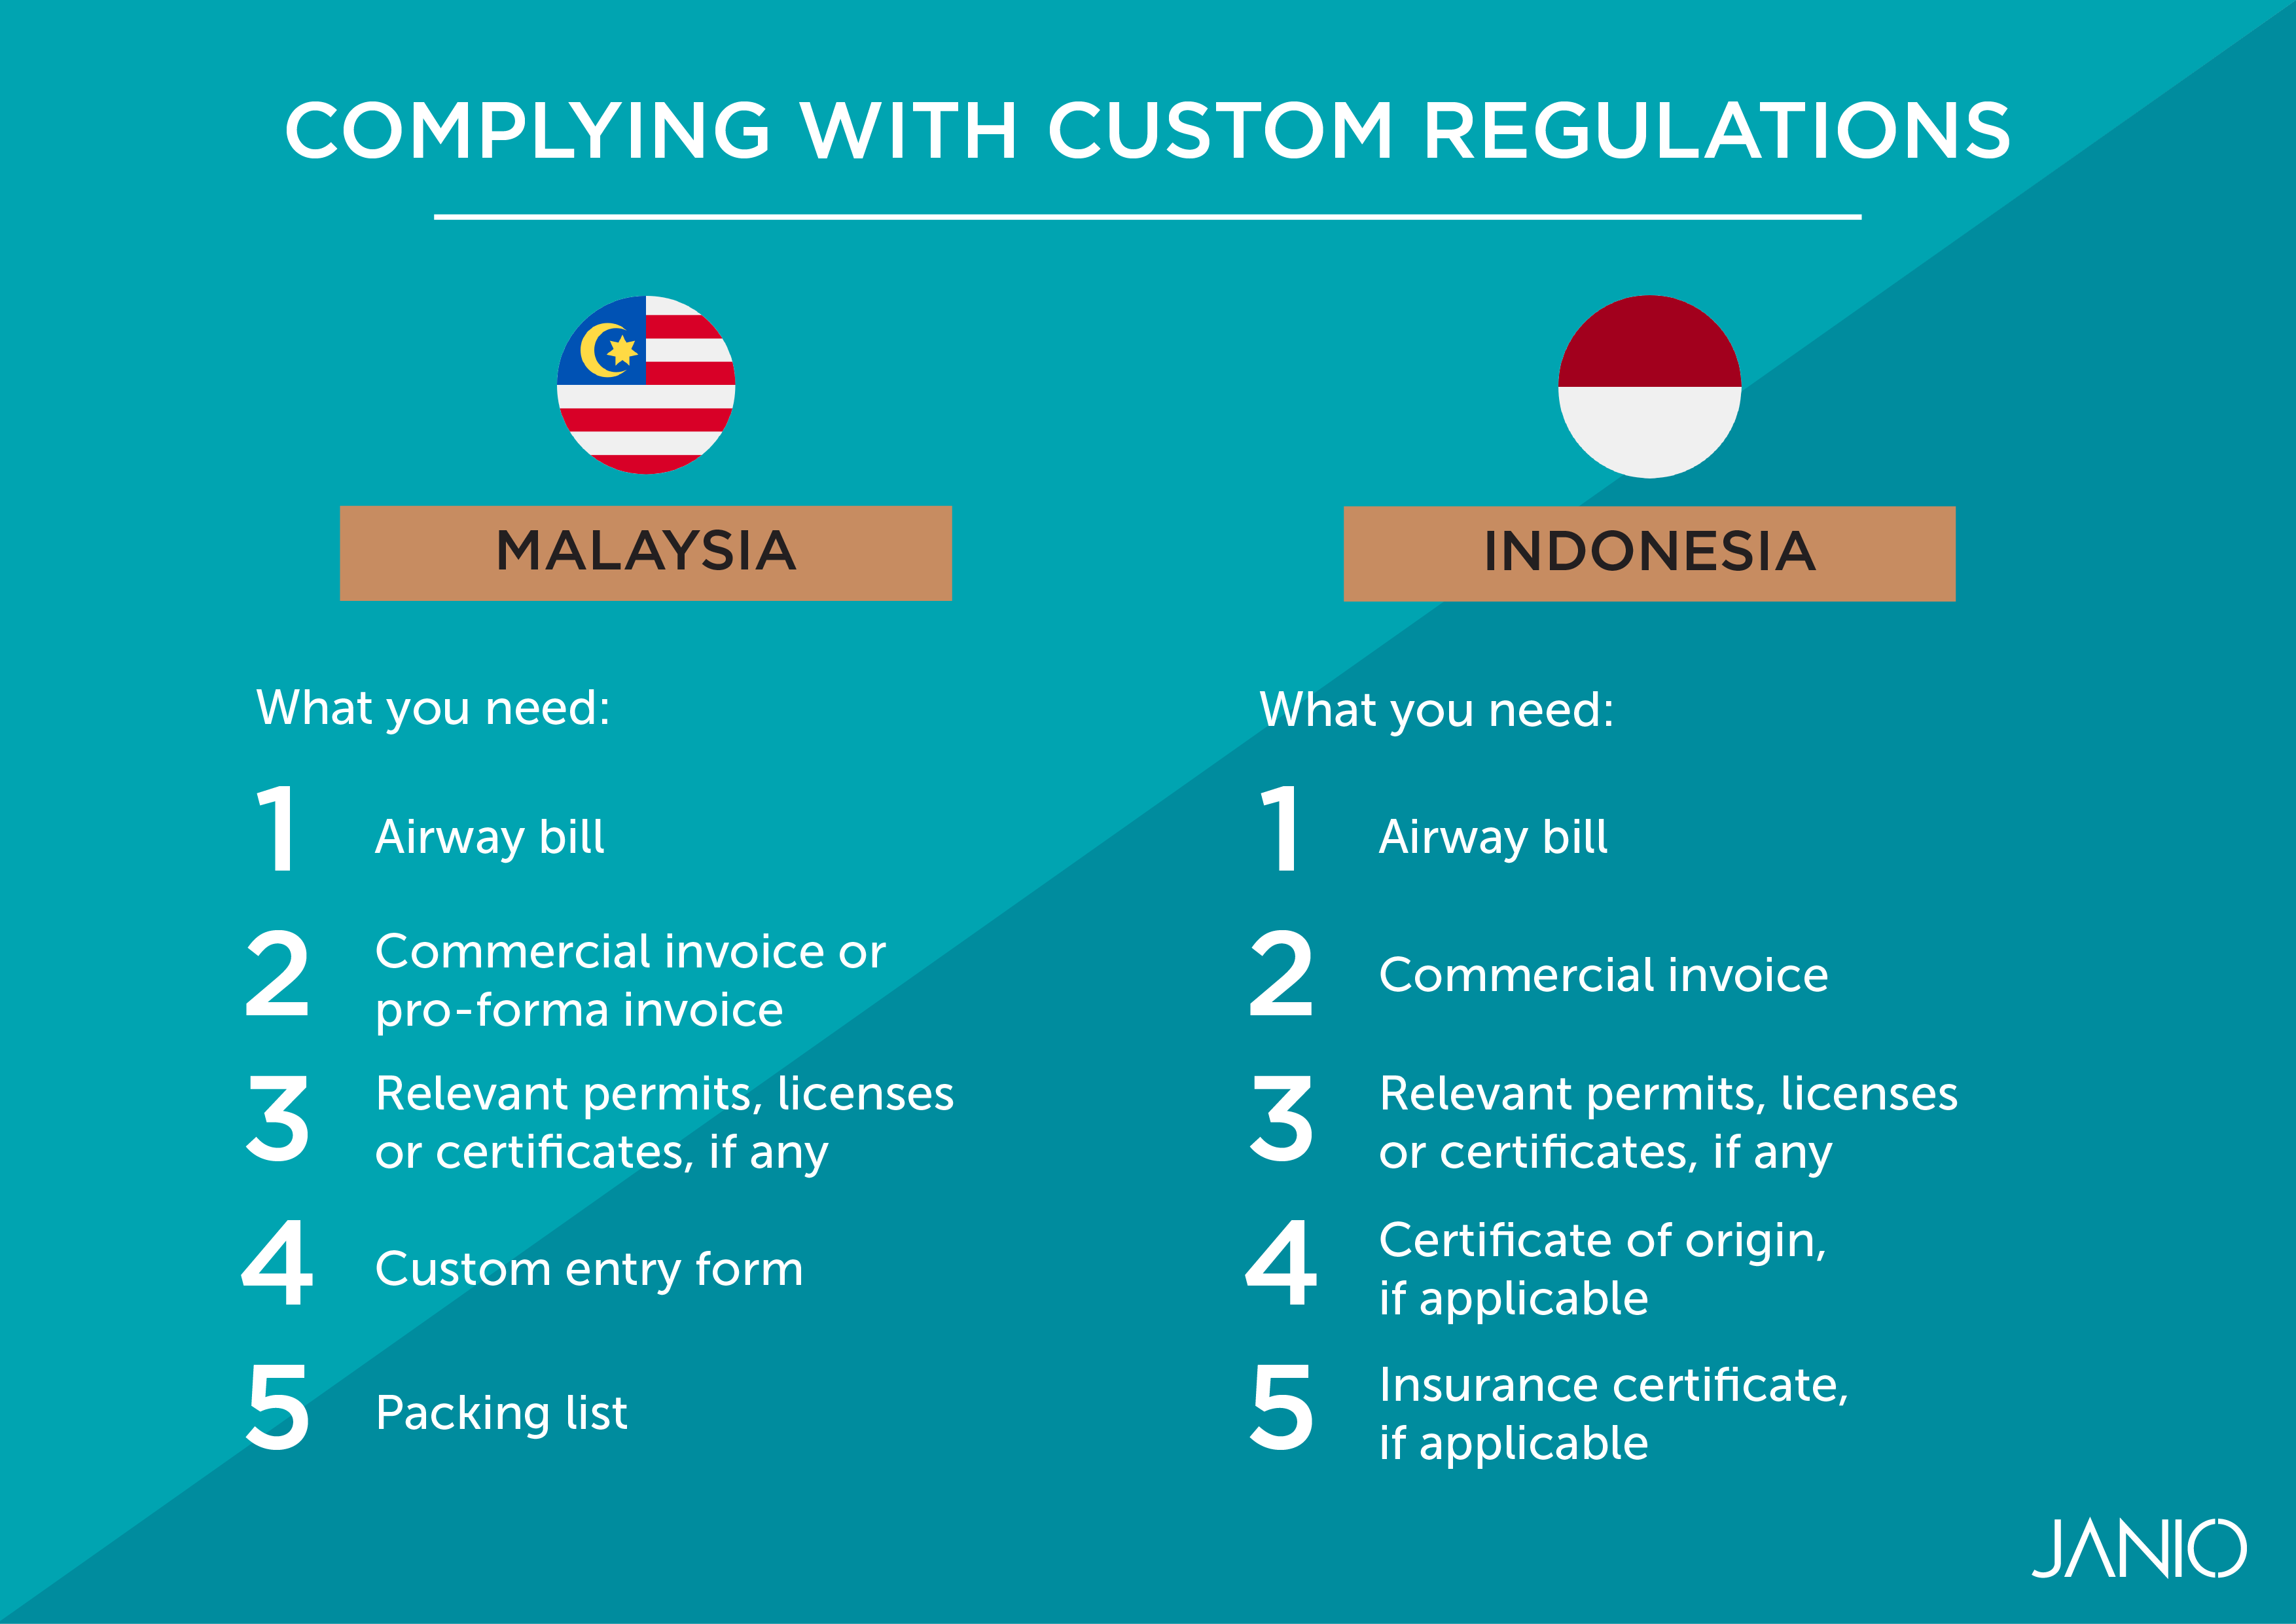 Infographic showing customs documentation you need to comply with Malaysian and Indonesian customs